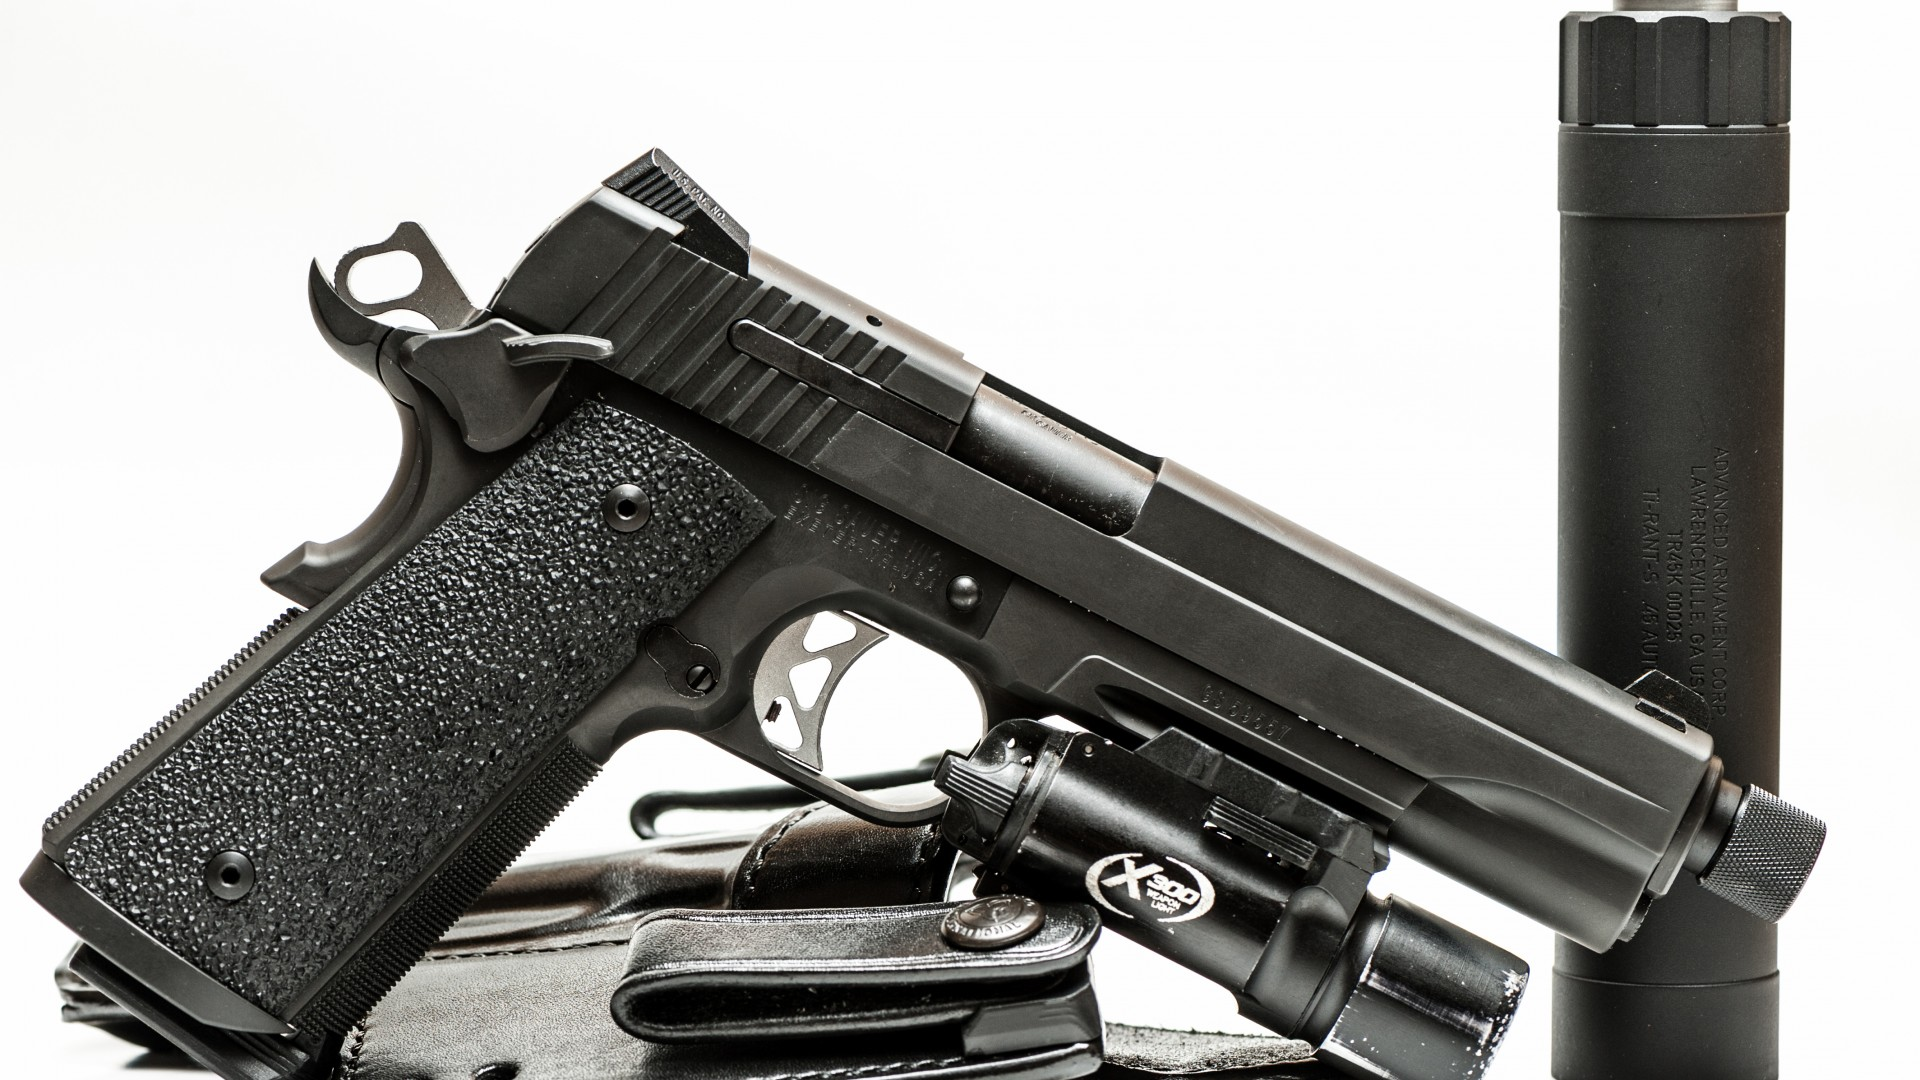 Wallpaper Pistols Sig Sauer P226 Army: Wallpaper SIG Sauer P226, Black, Silencer, Germany